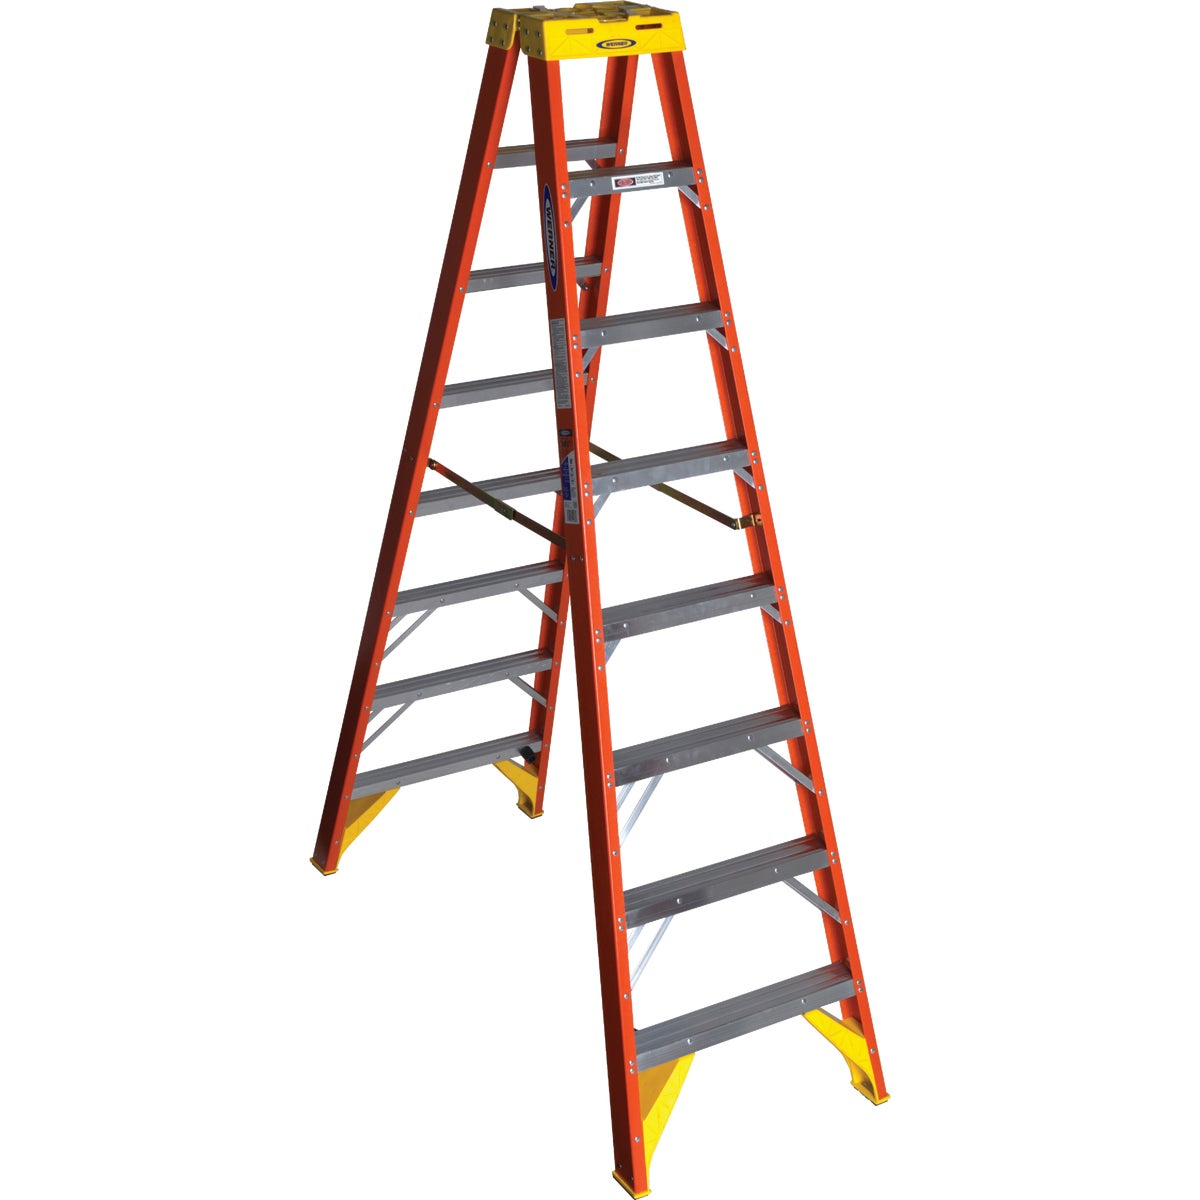 T-1A 8' TWIN STEPLADDER - T6208 by Werner Ladder